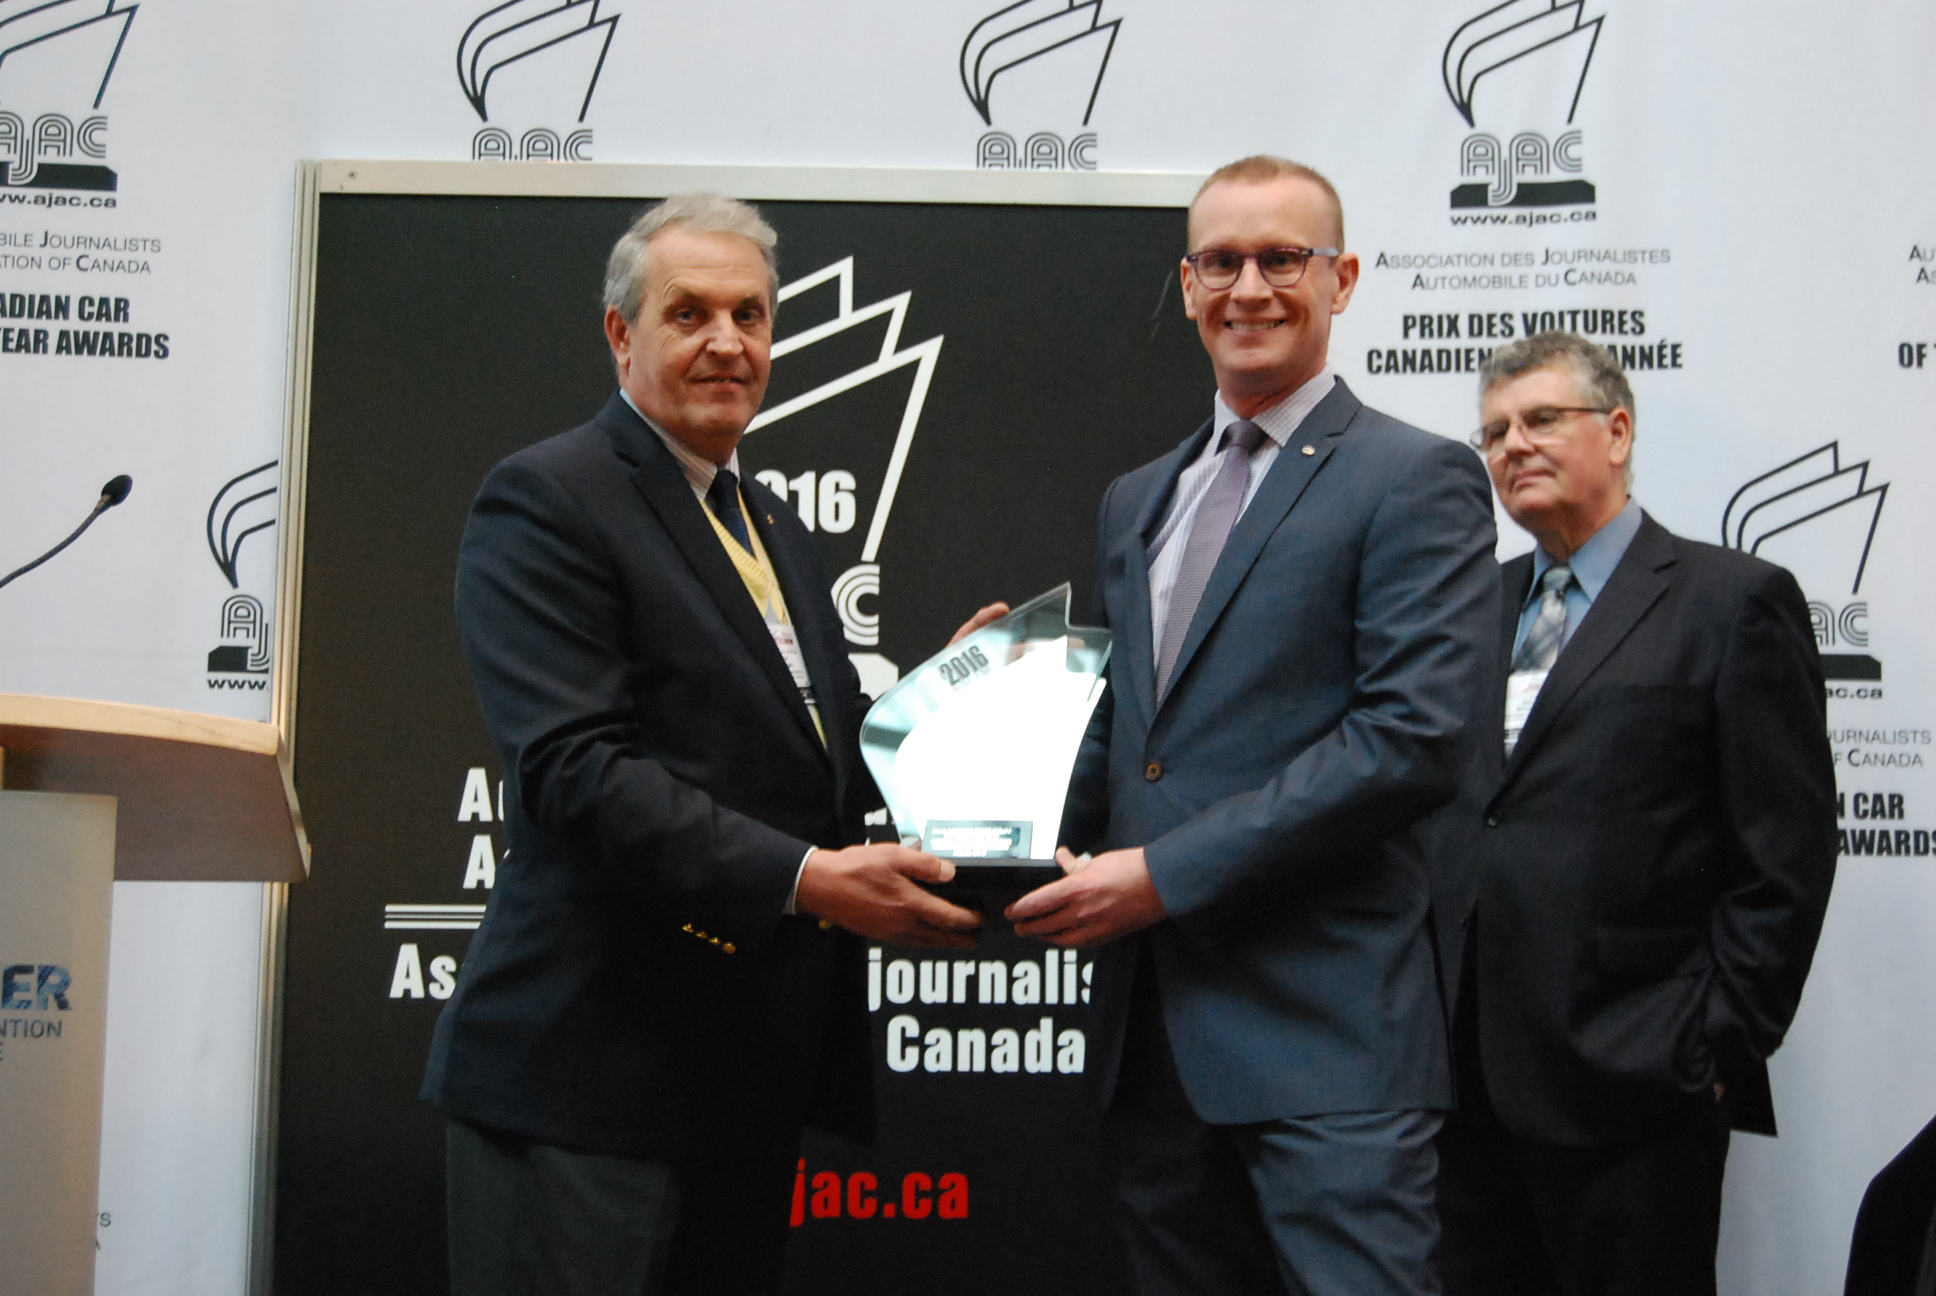 Accepting the award is Scot Rasmussen, Regional Manager, Western Region, Mazda Canada. Presenting is Kevin Corrigan, background is Bob McHugh.